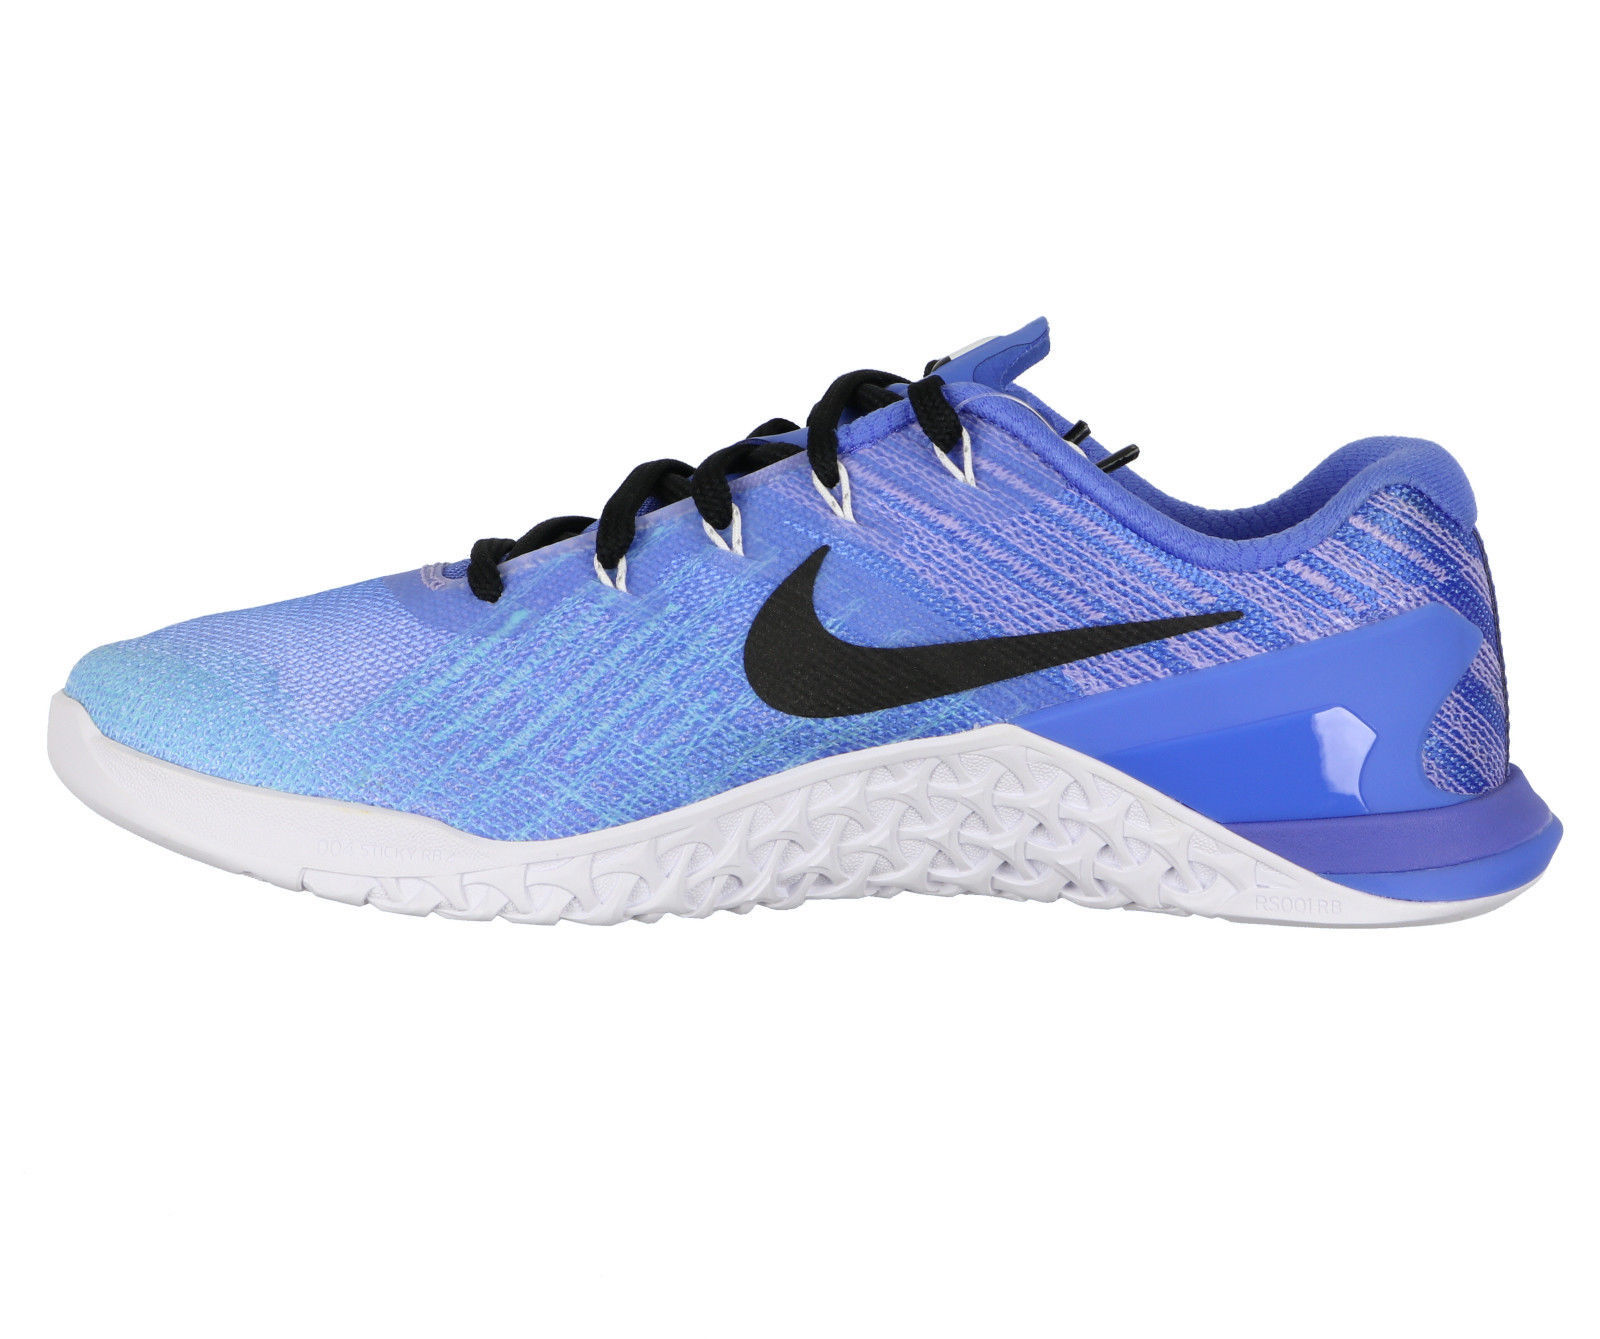 32ac01a654b49 NIKE Women s Metcon 3 Fade Training Shoes sz 8 Gradient Blue White TR